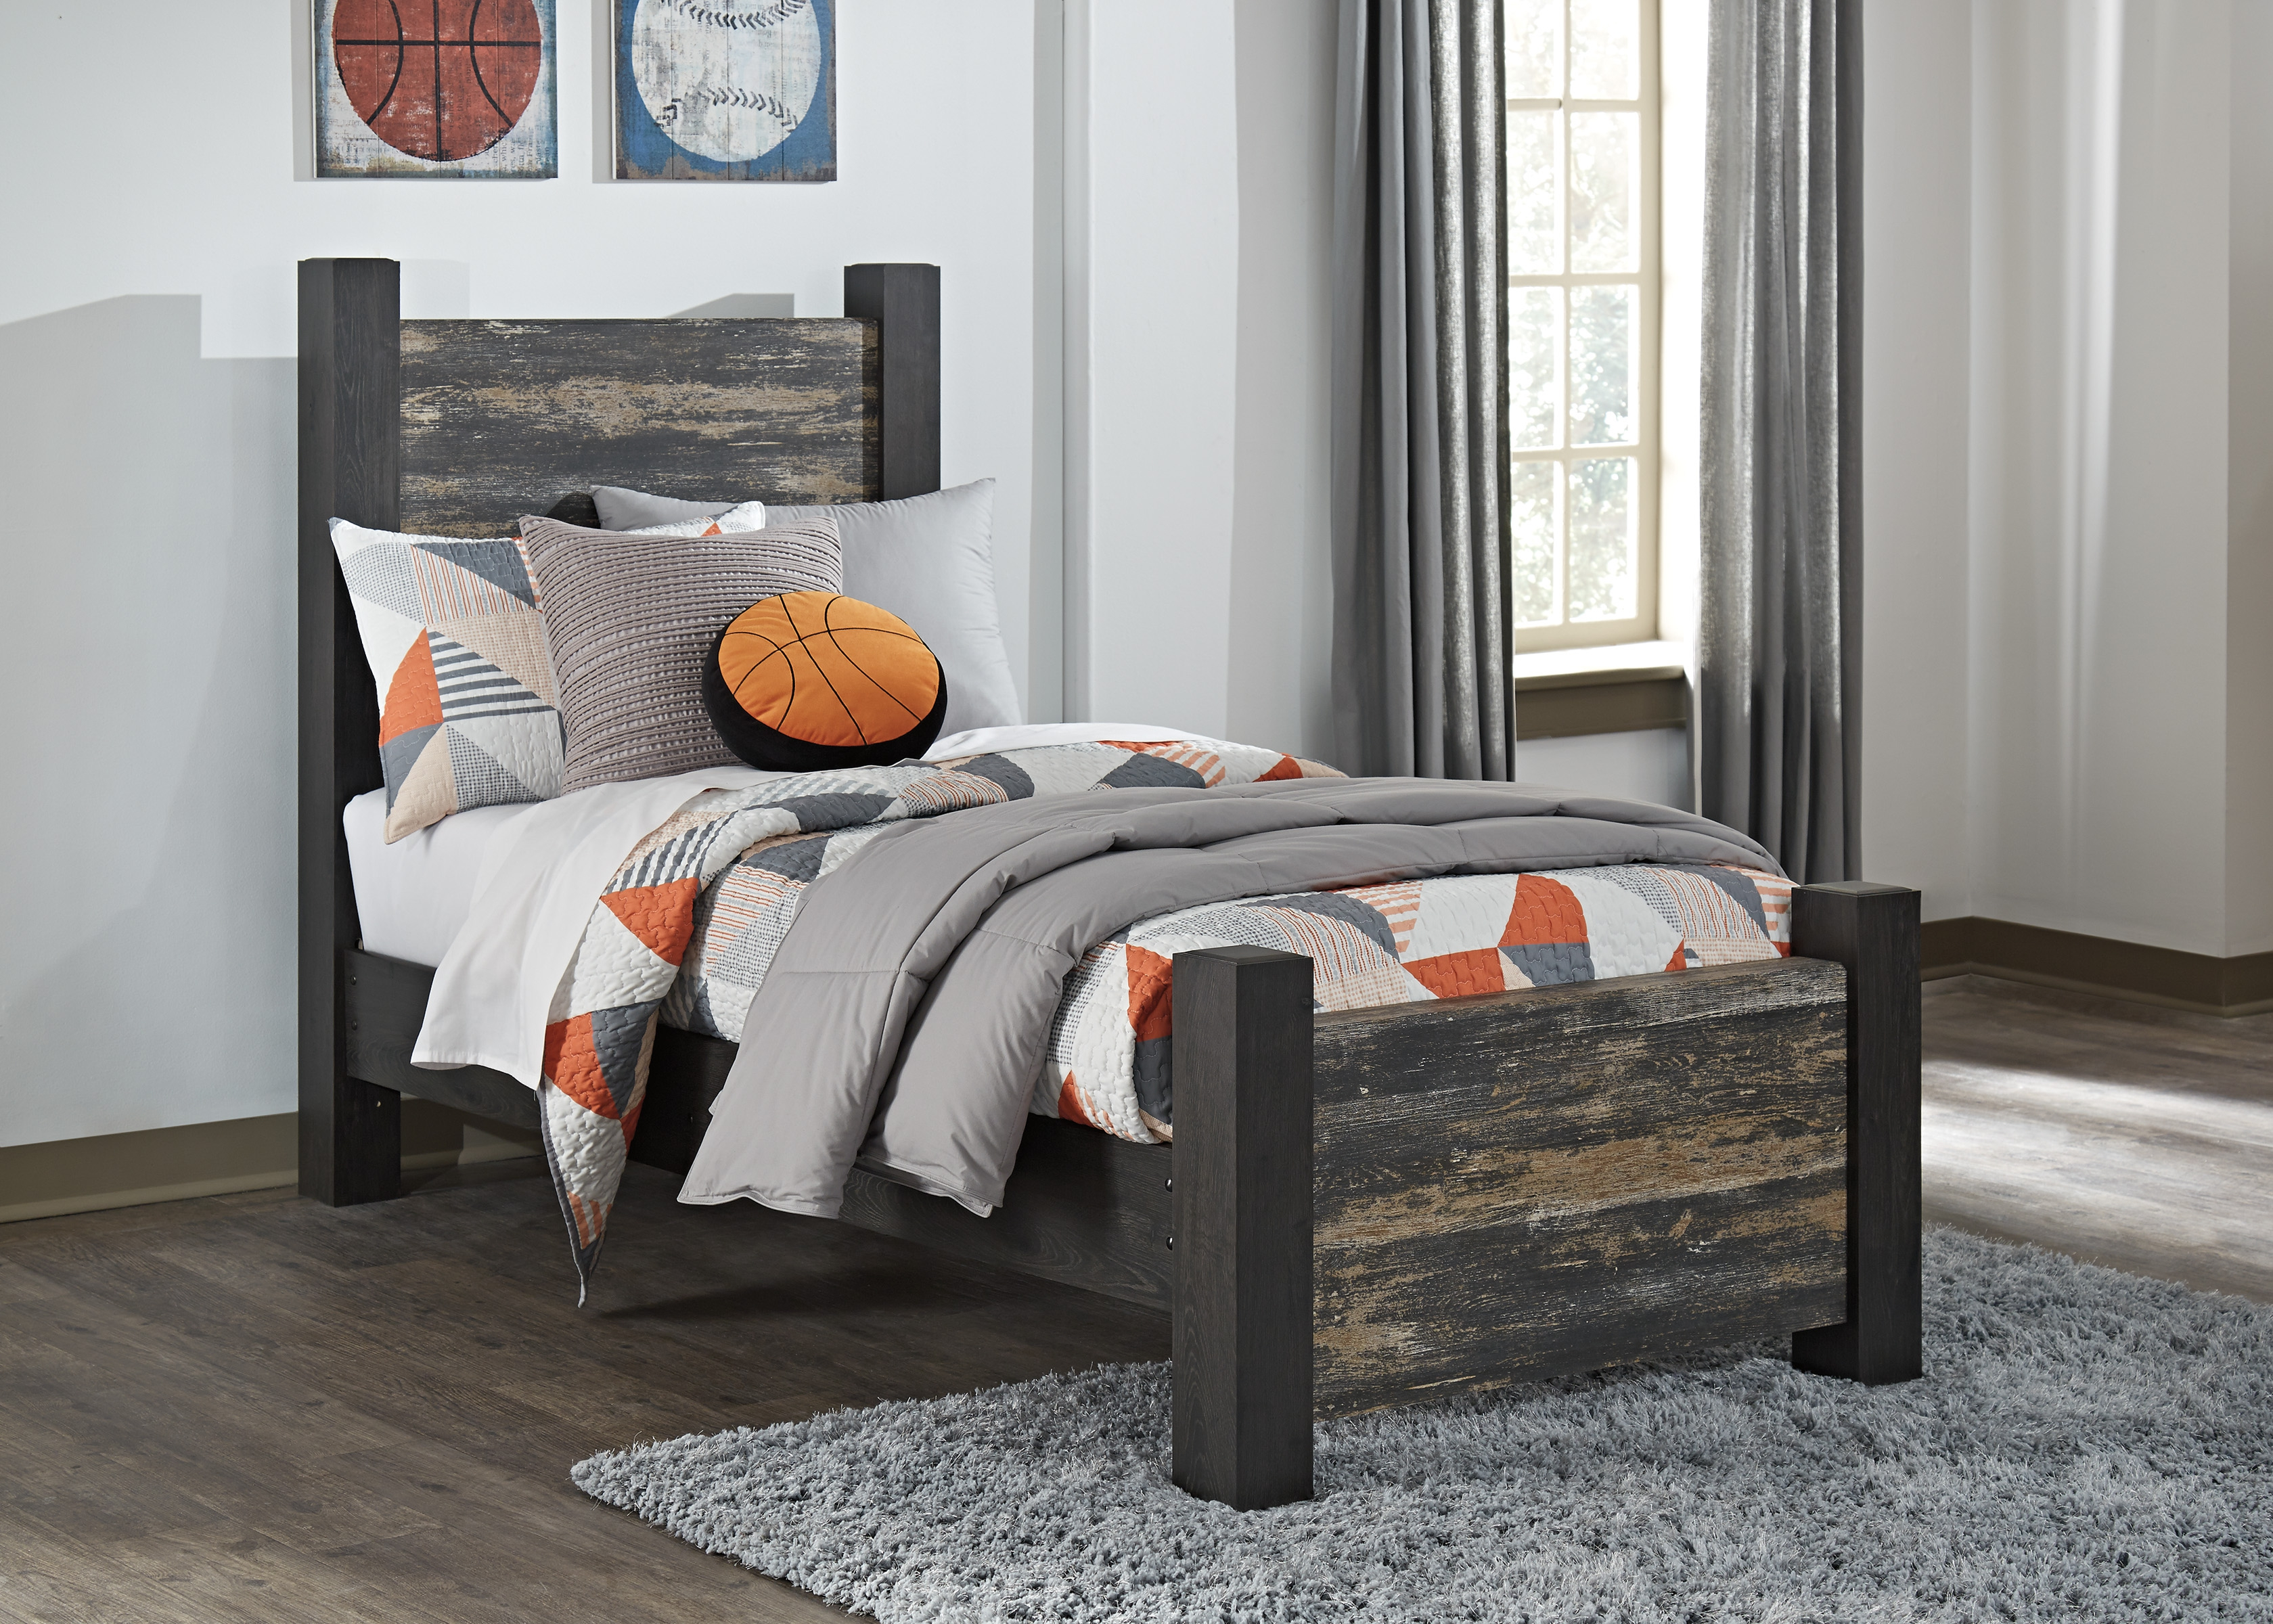 Ashley Furniture Westinton Master Bedroom Set The Classy